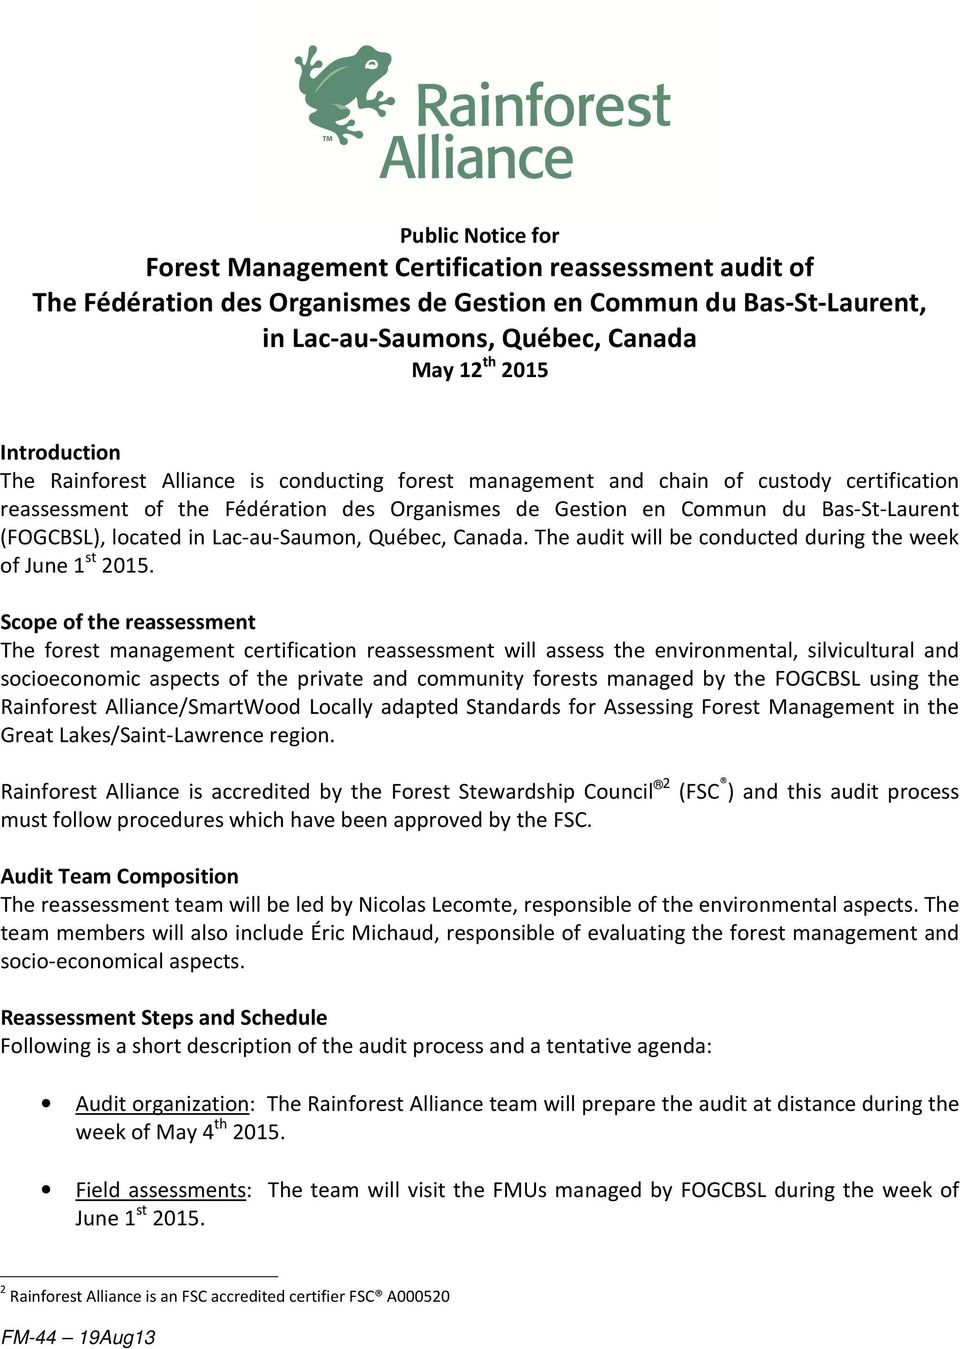 located in Lac-au-Saumon, Québec, Canada. The audit will be conducted during the week of June 1 st 2015.